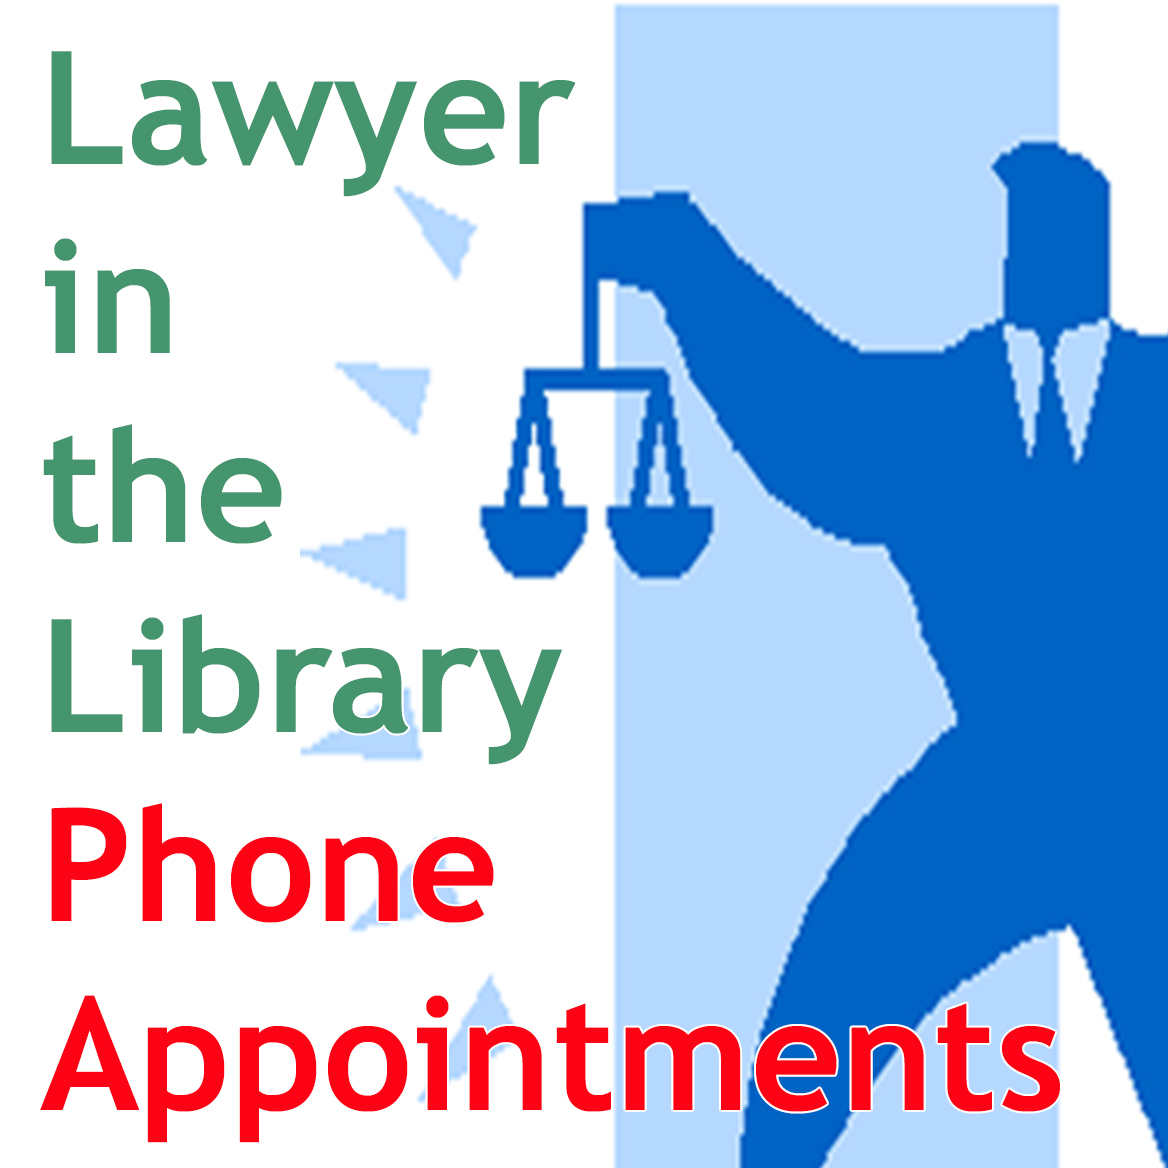 Lawyer in the Library Phone Appointments with image of man holding scales